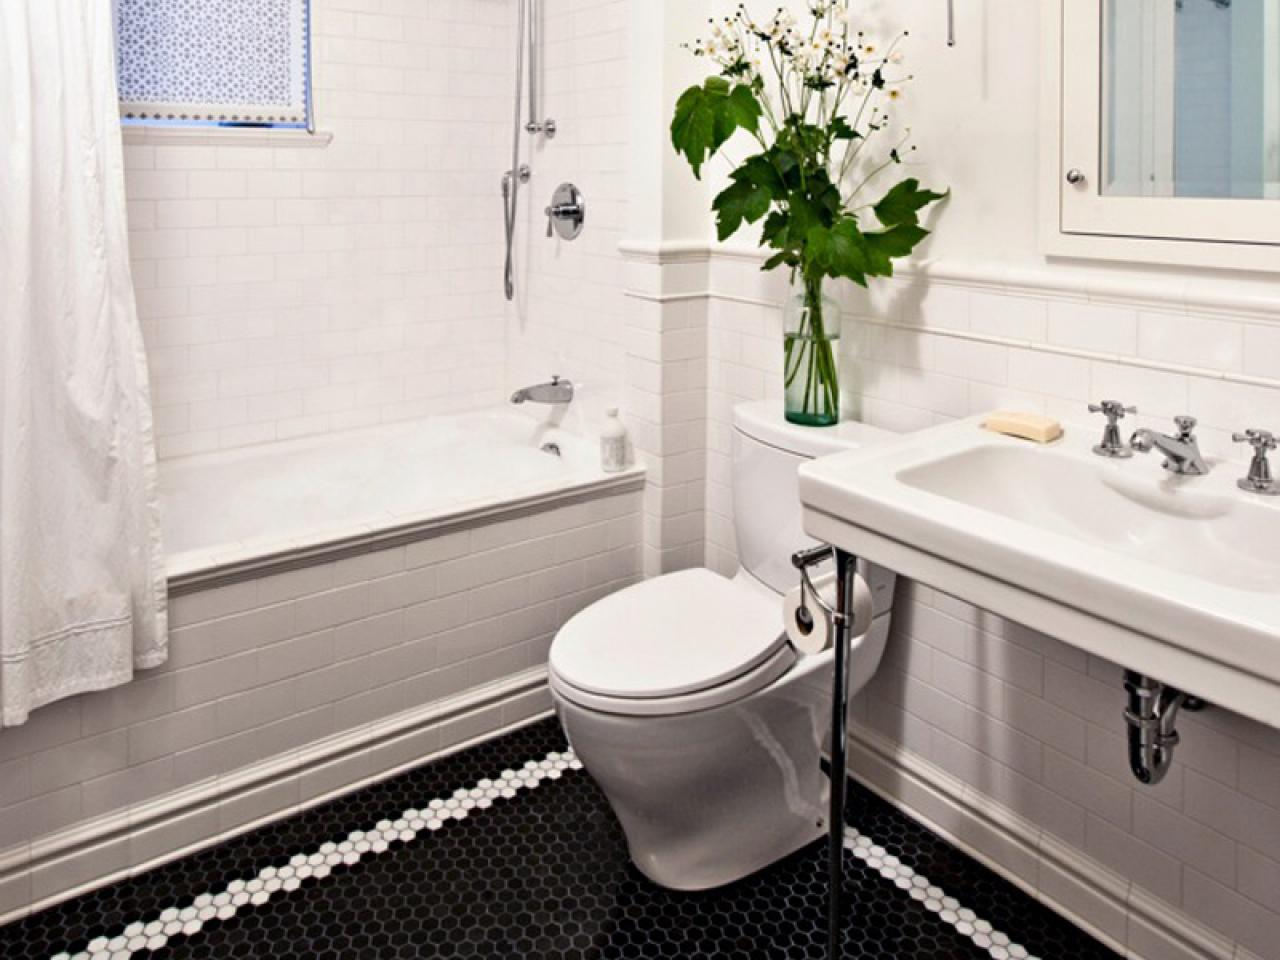 Original_Bathroom-Tile-Jessica-Helgerson-Black-White-Tile_s4x3.jpg.rend.hgtvcom.1280.960